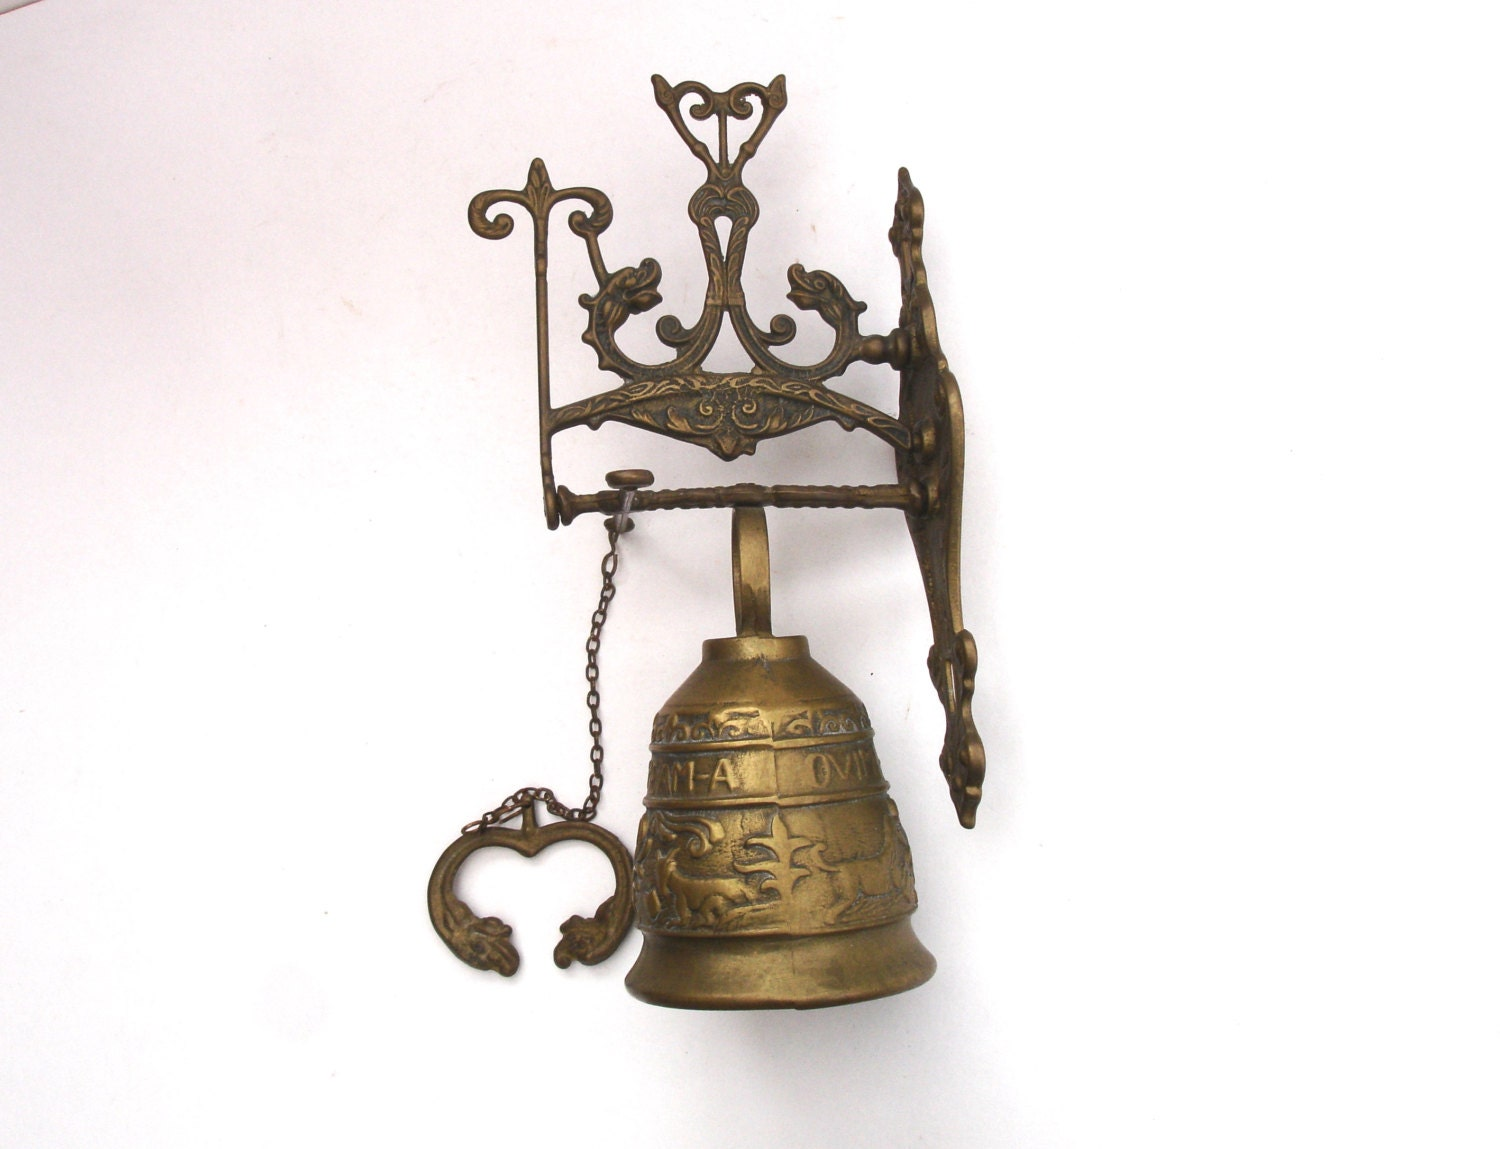 Large Vintage Brass Door Bell With Pull Chain Vintage Brass